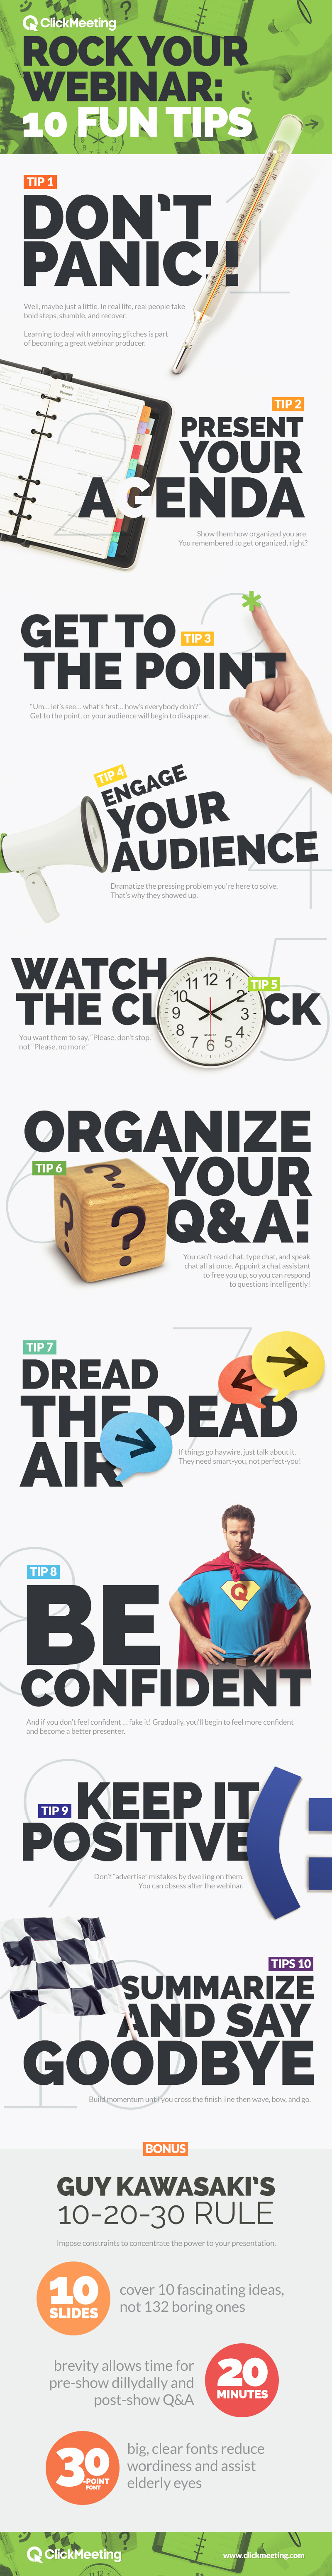 Infographic: 10 Fun Tips to Get Ready for Your Webinar